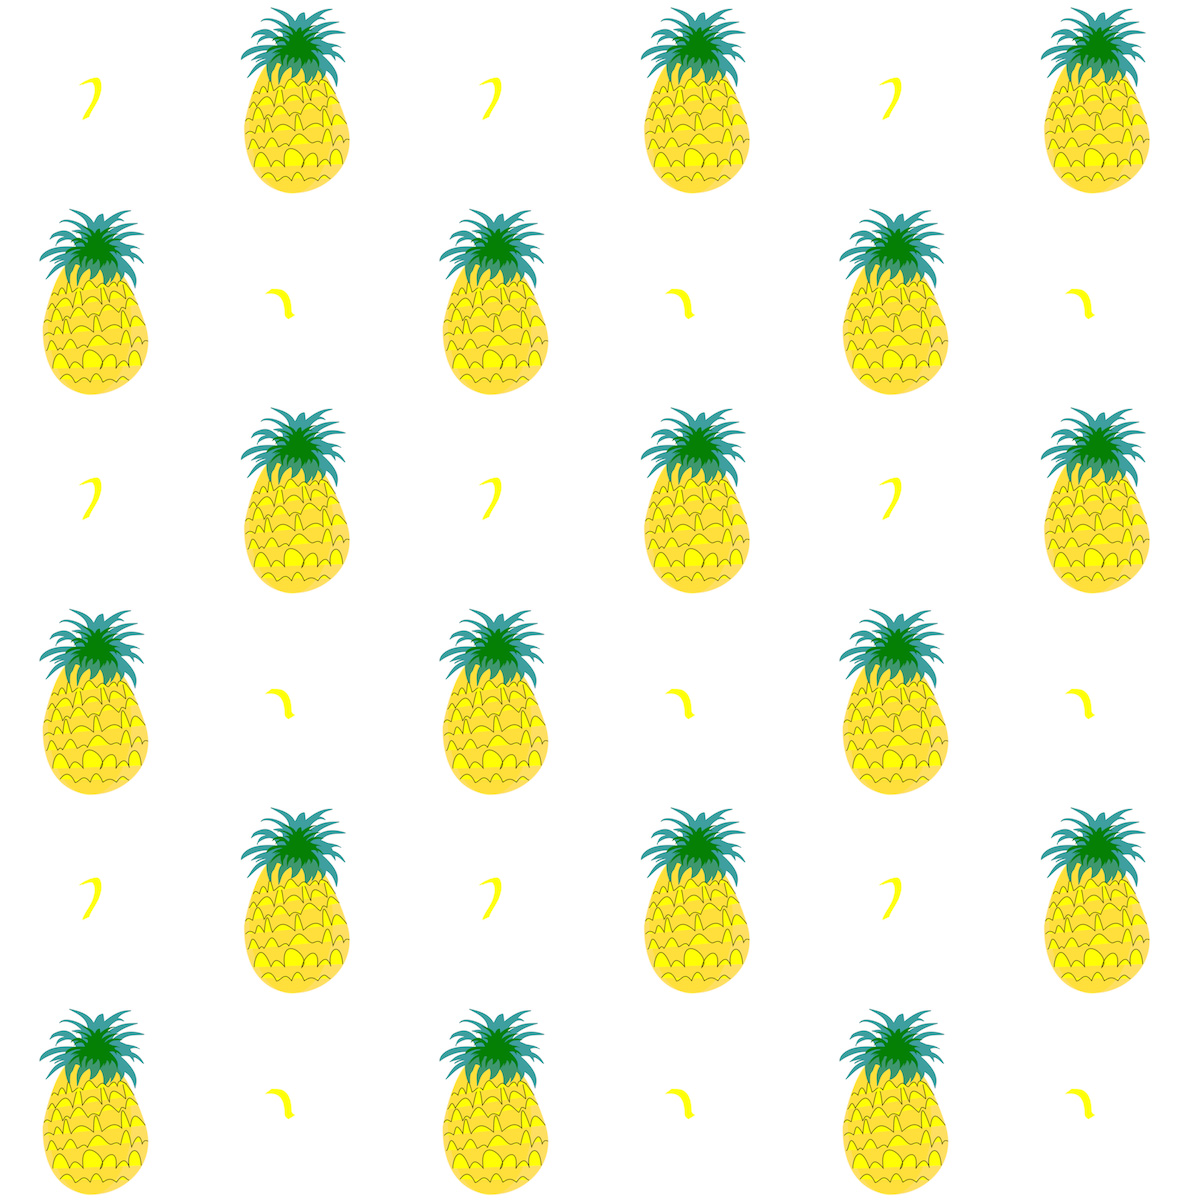 Pineapple pattern background - photo#8